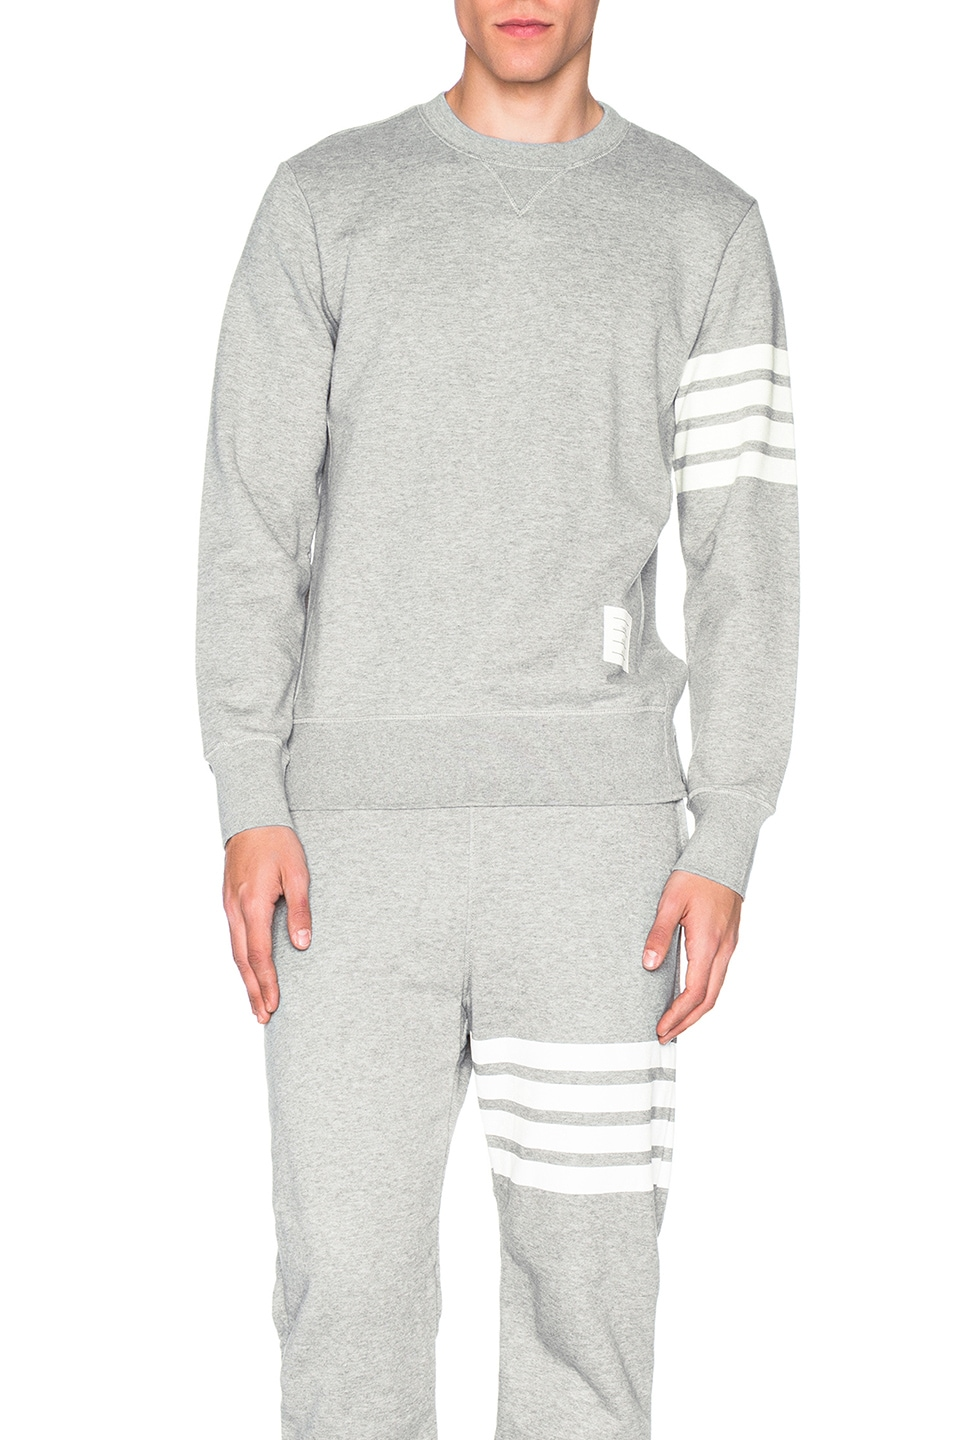 Grey Classic Sweatshirt With Engineered 4-Bar In Classic Loop Back, Gray